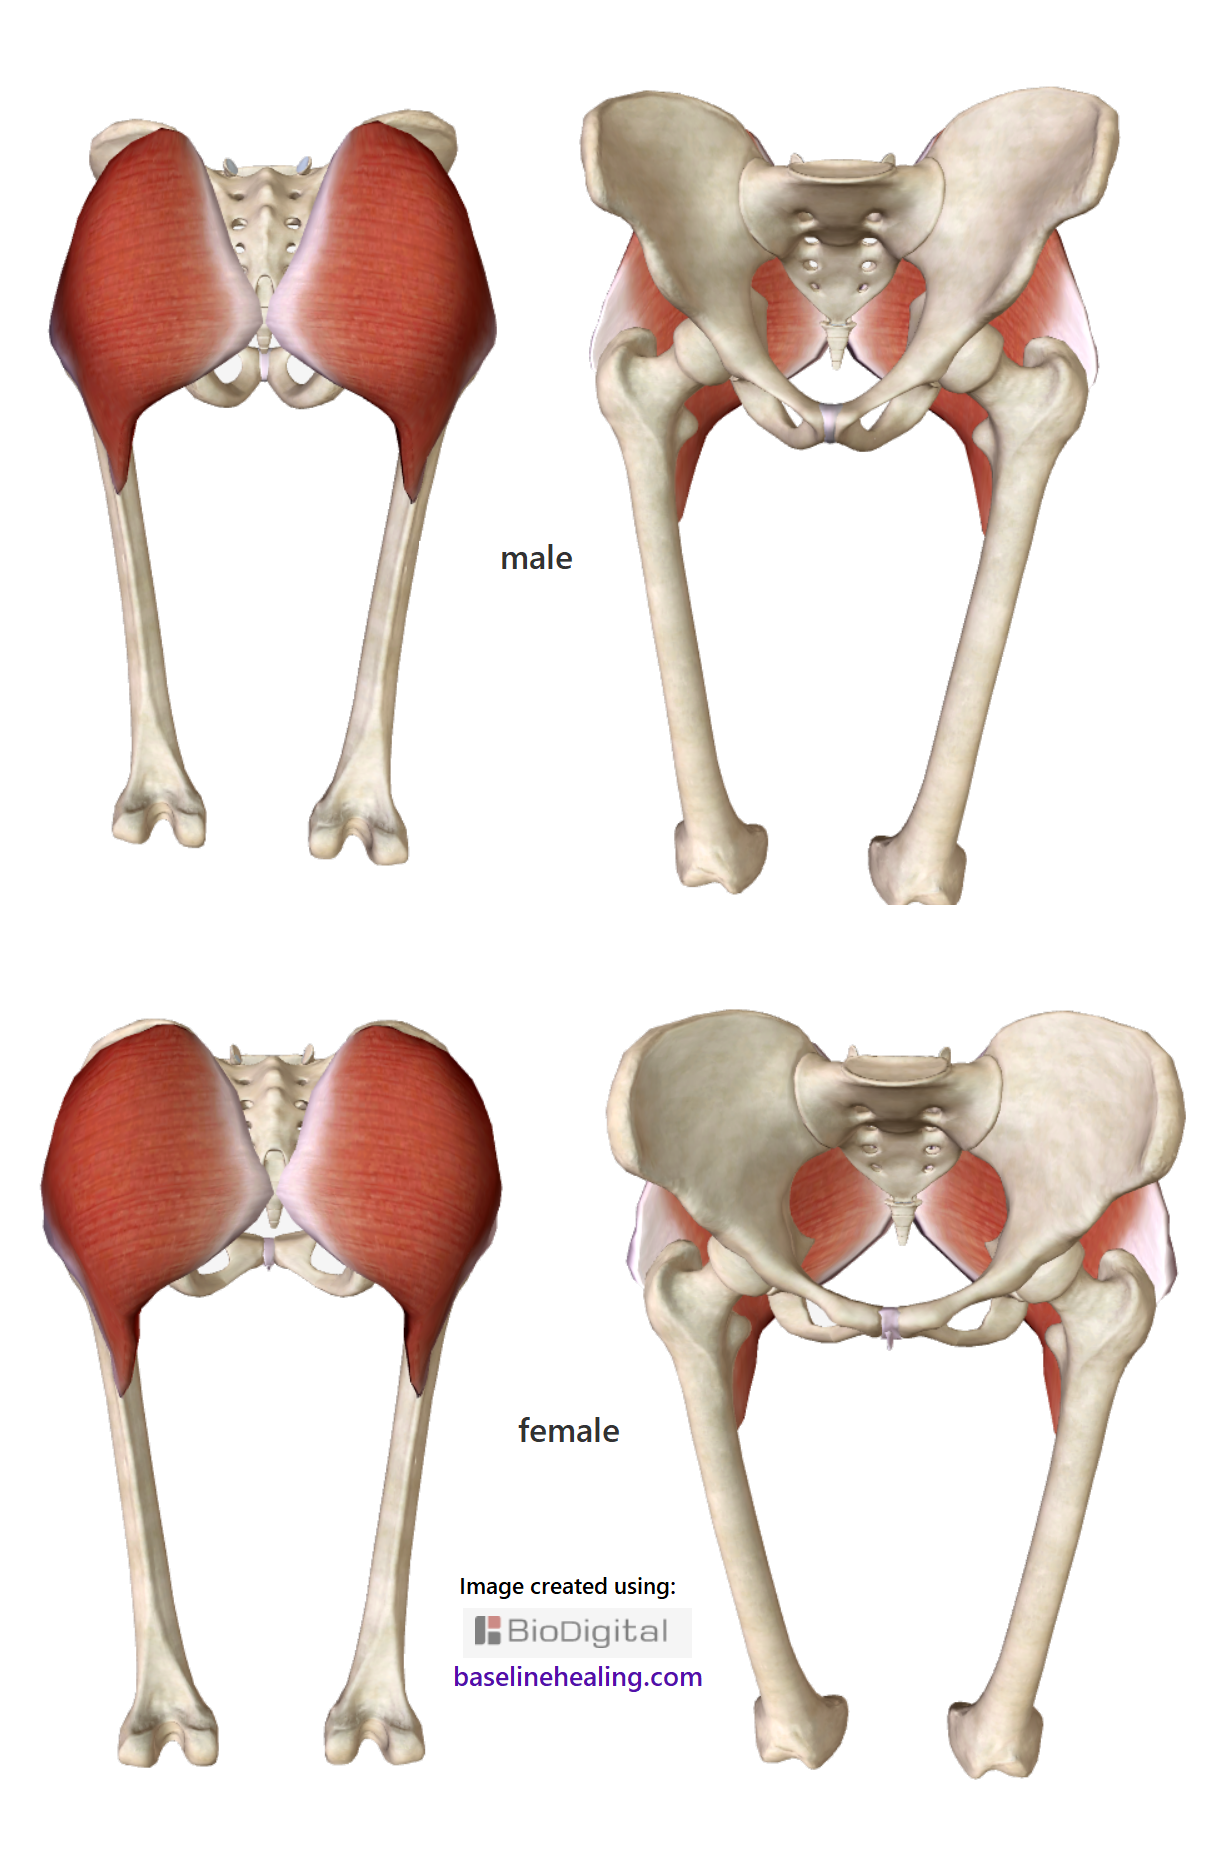 gluteus maximus muscles with the basic bony attachments, male and female pelvis.